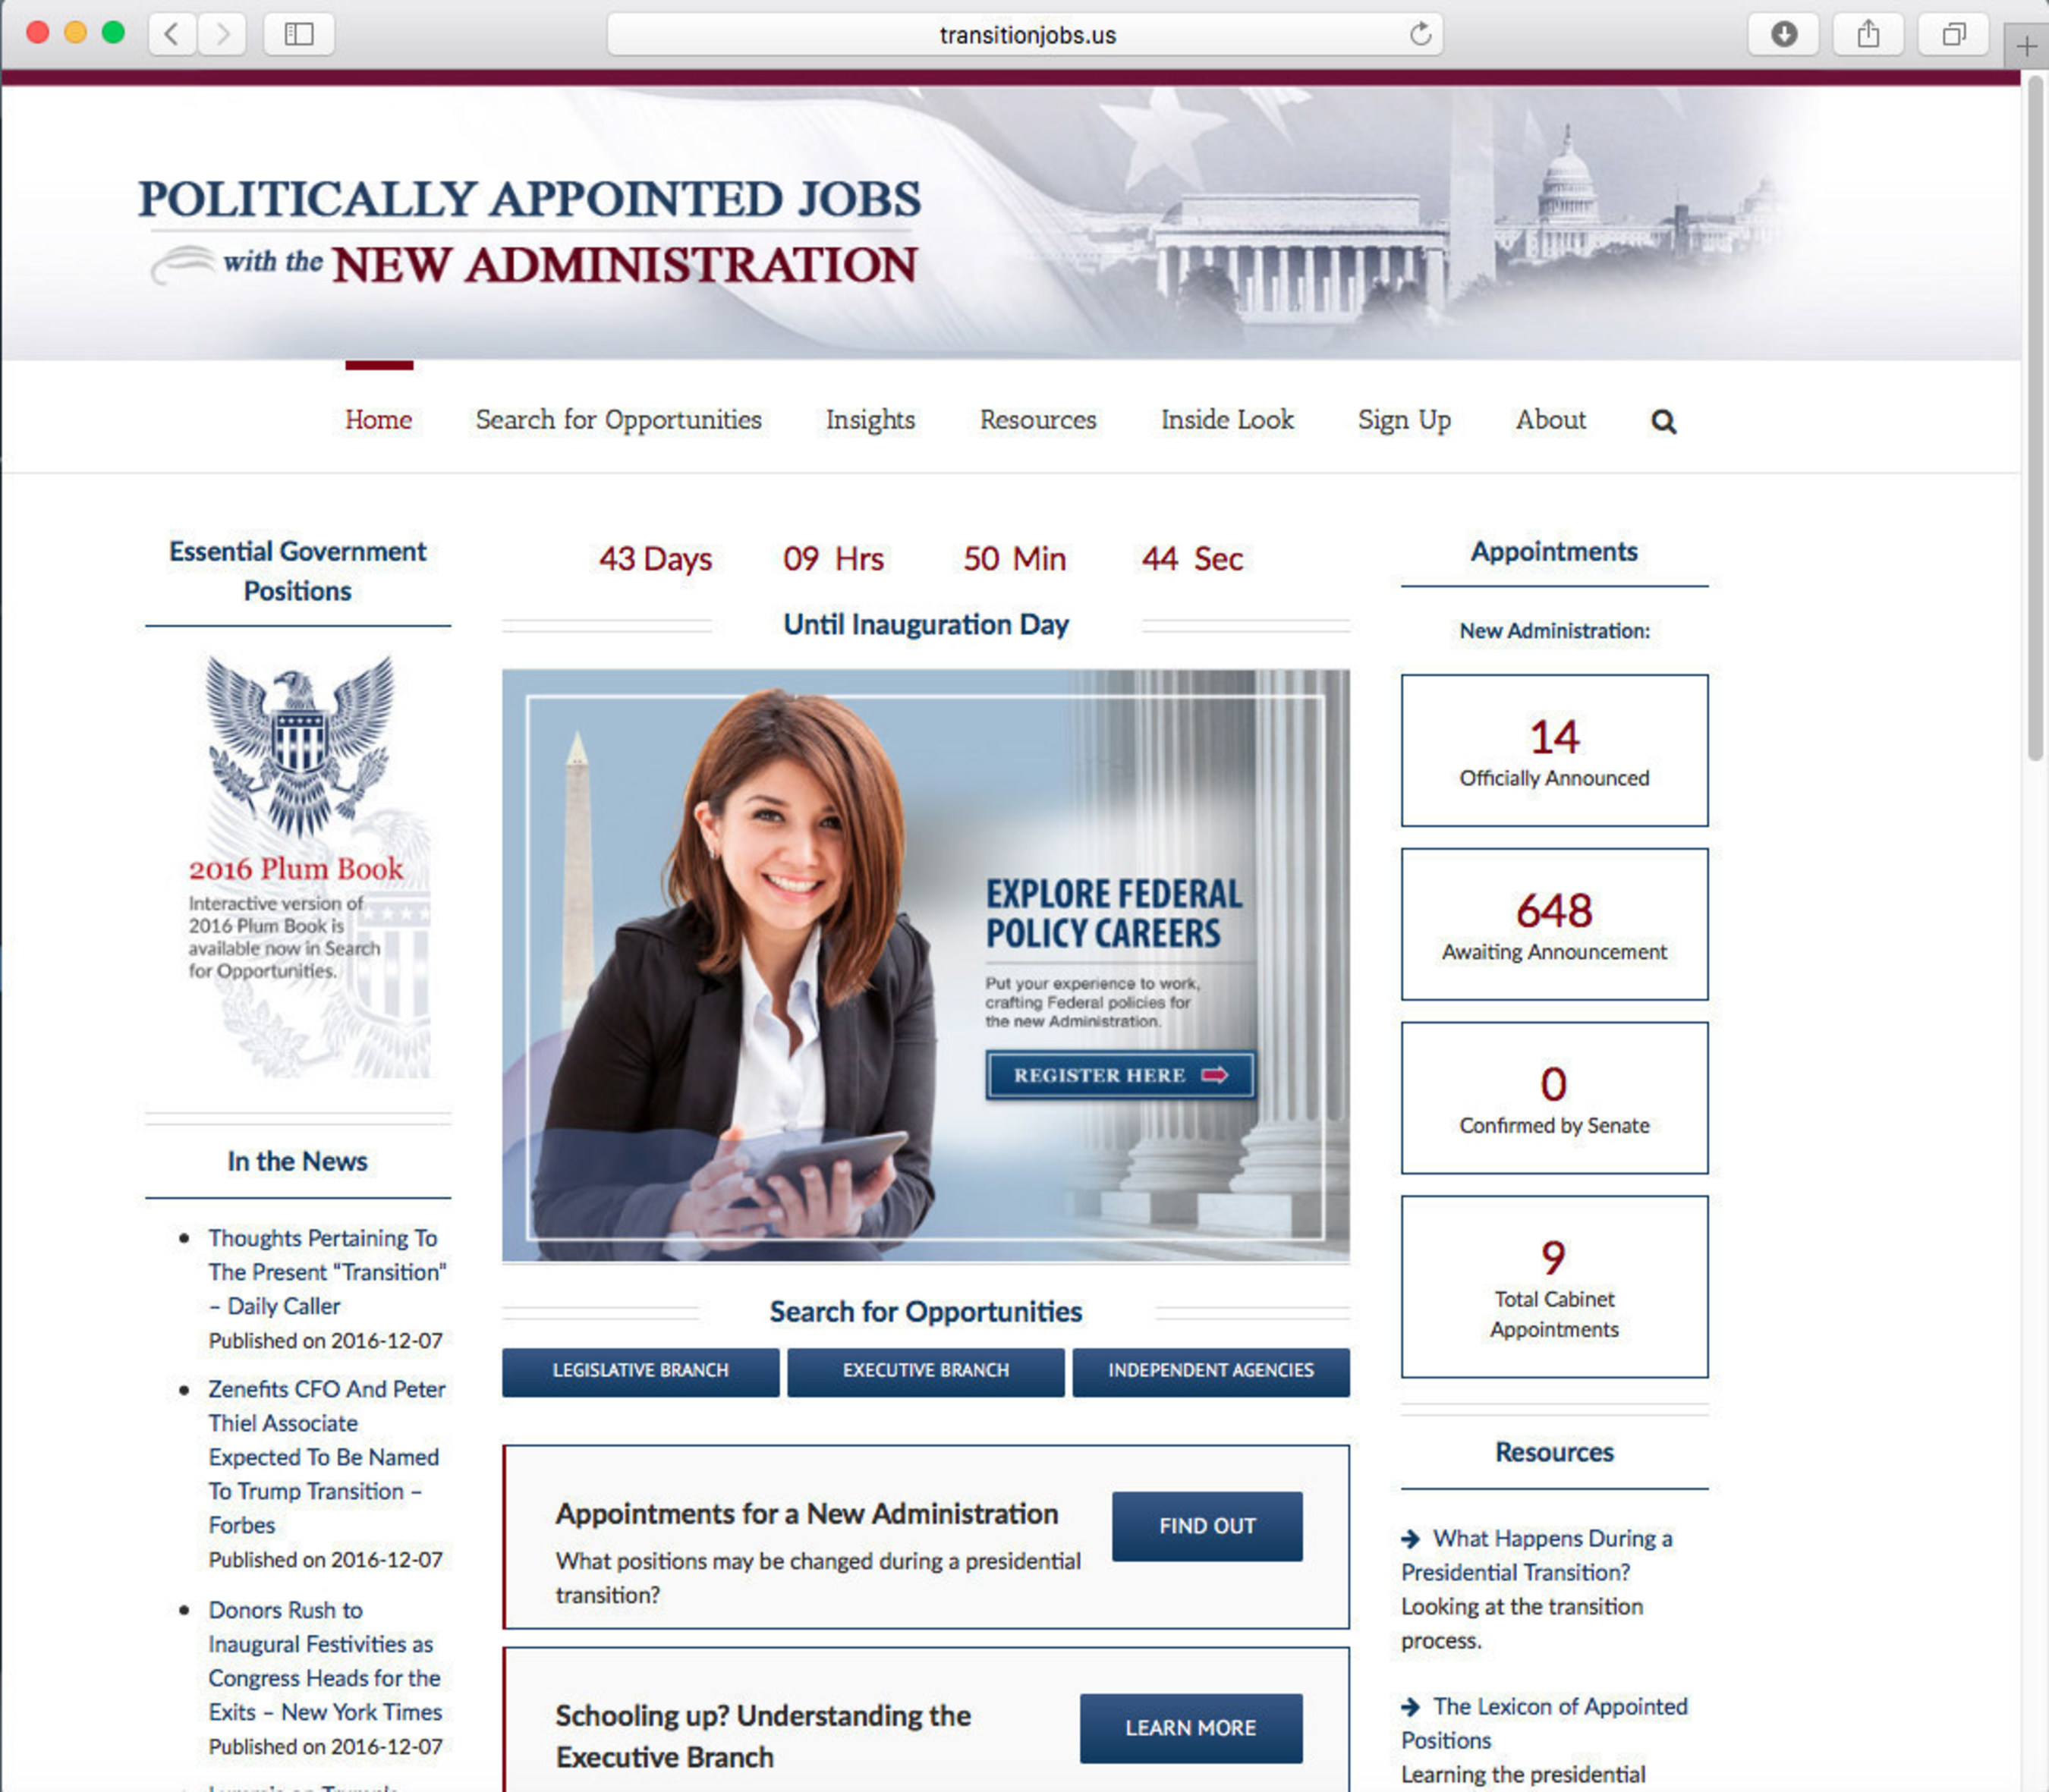 All New Administration Positions Listed on transitionjobs.us